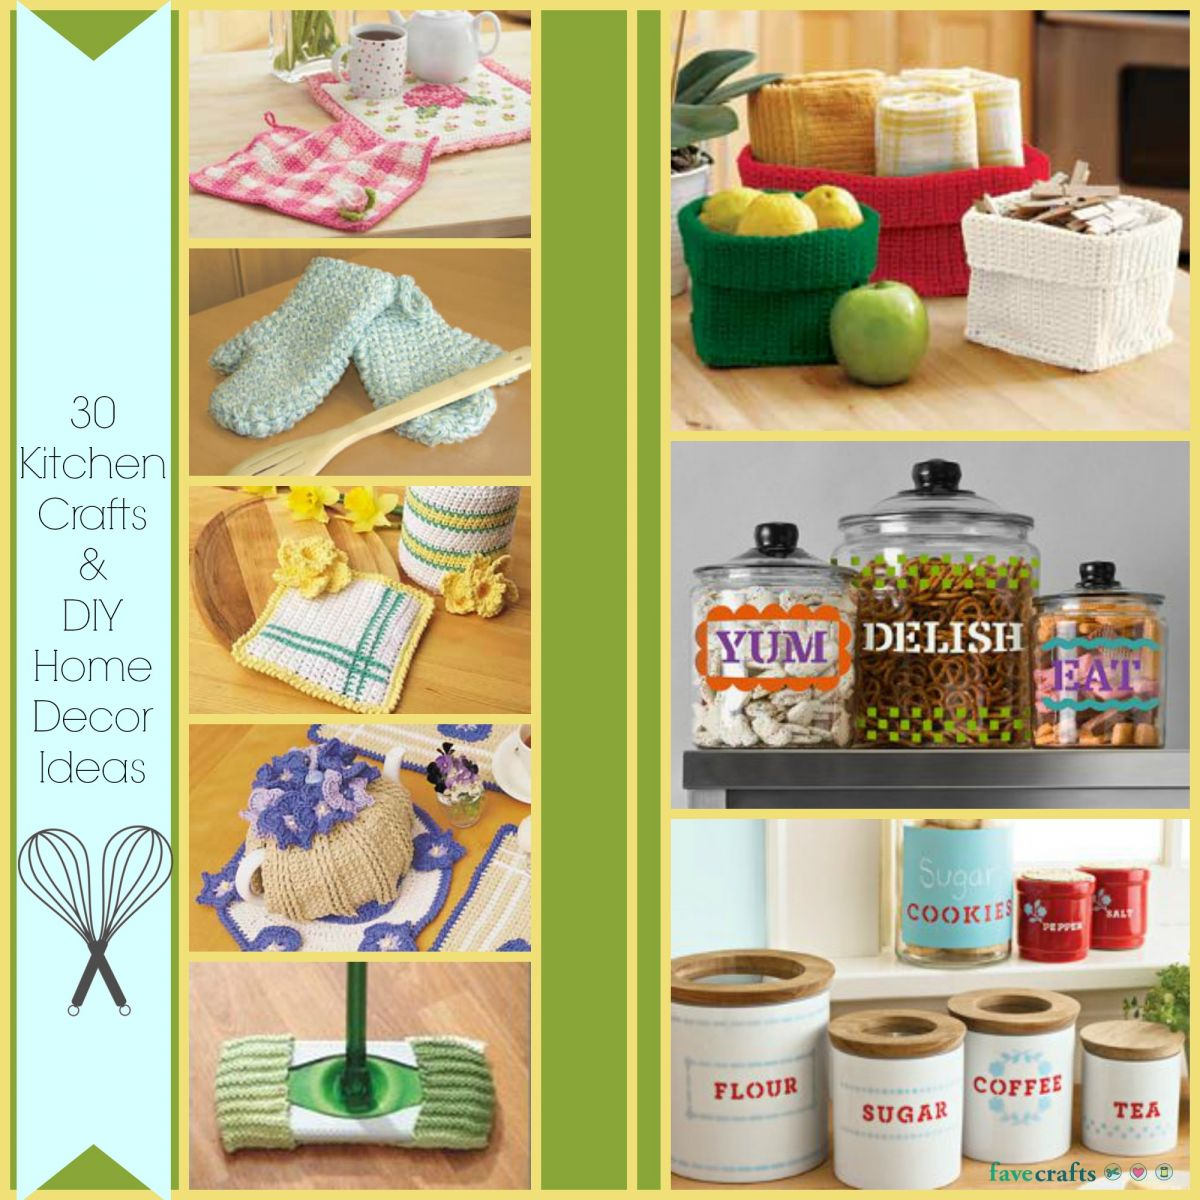 30 kitchen crafts and diy home decor ideas for Art and craft ideas for home decoration